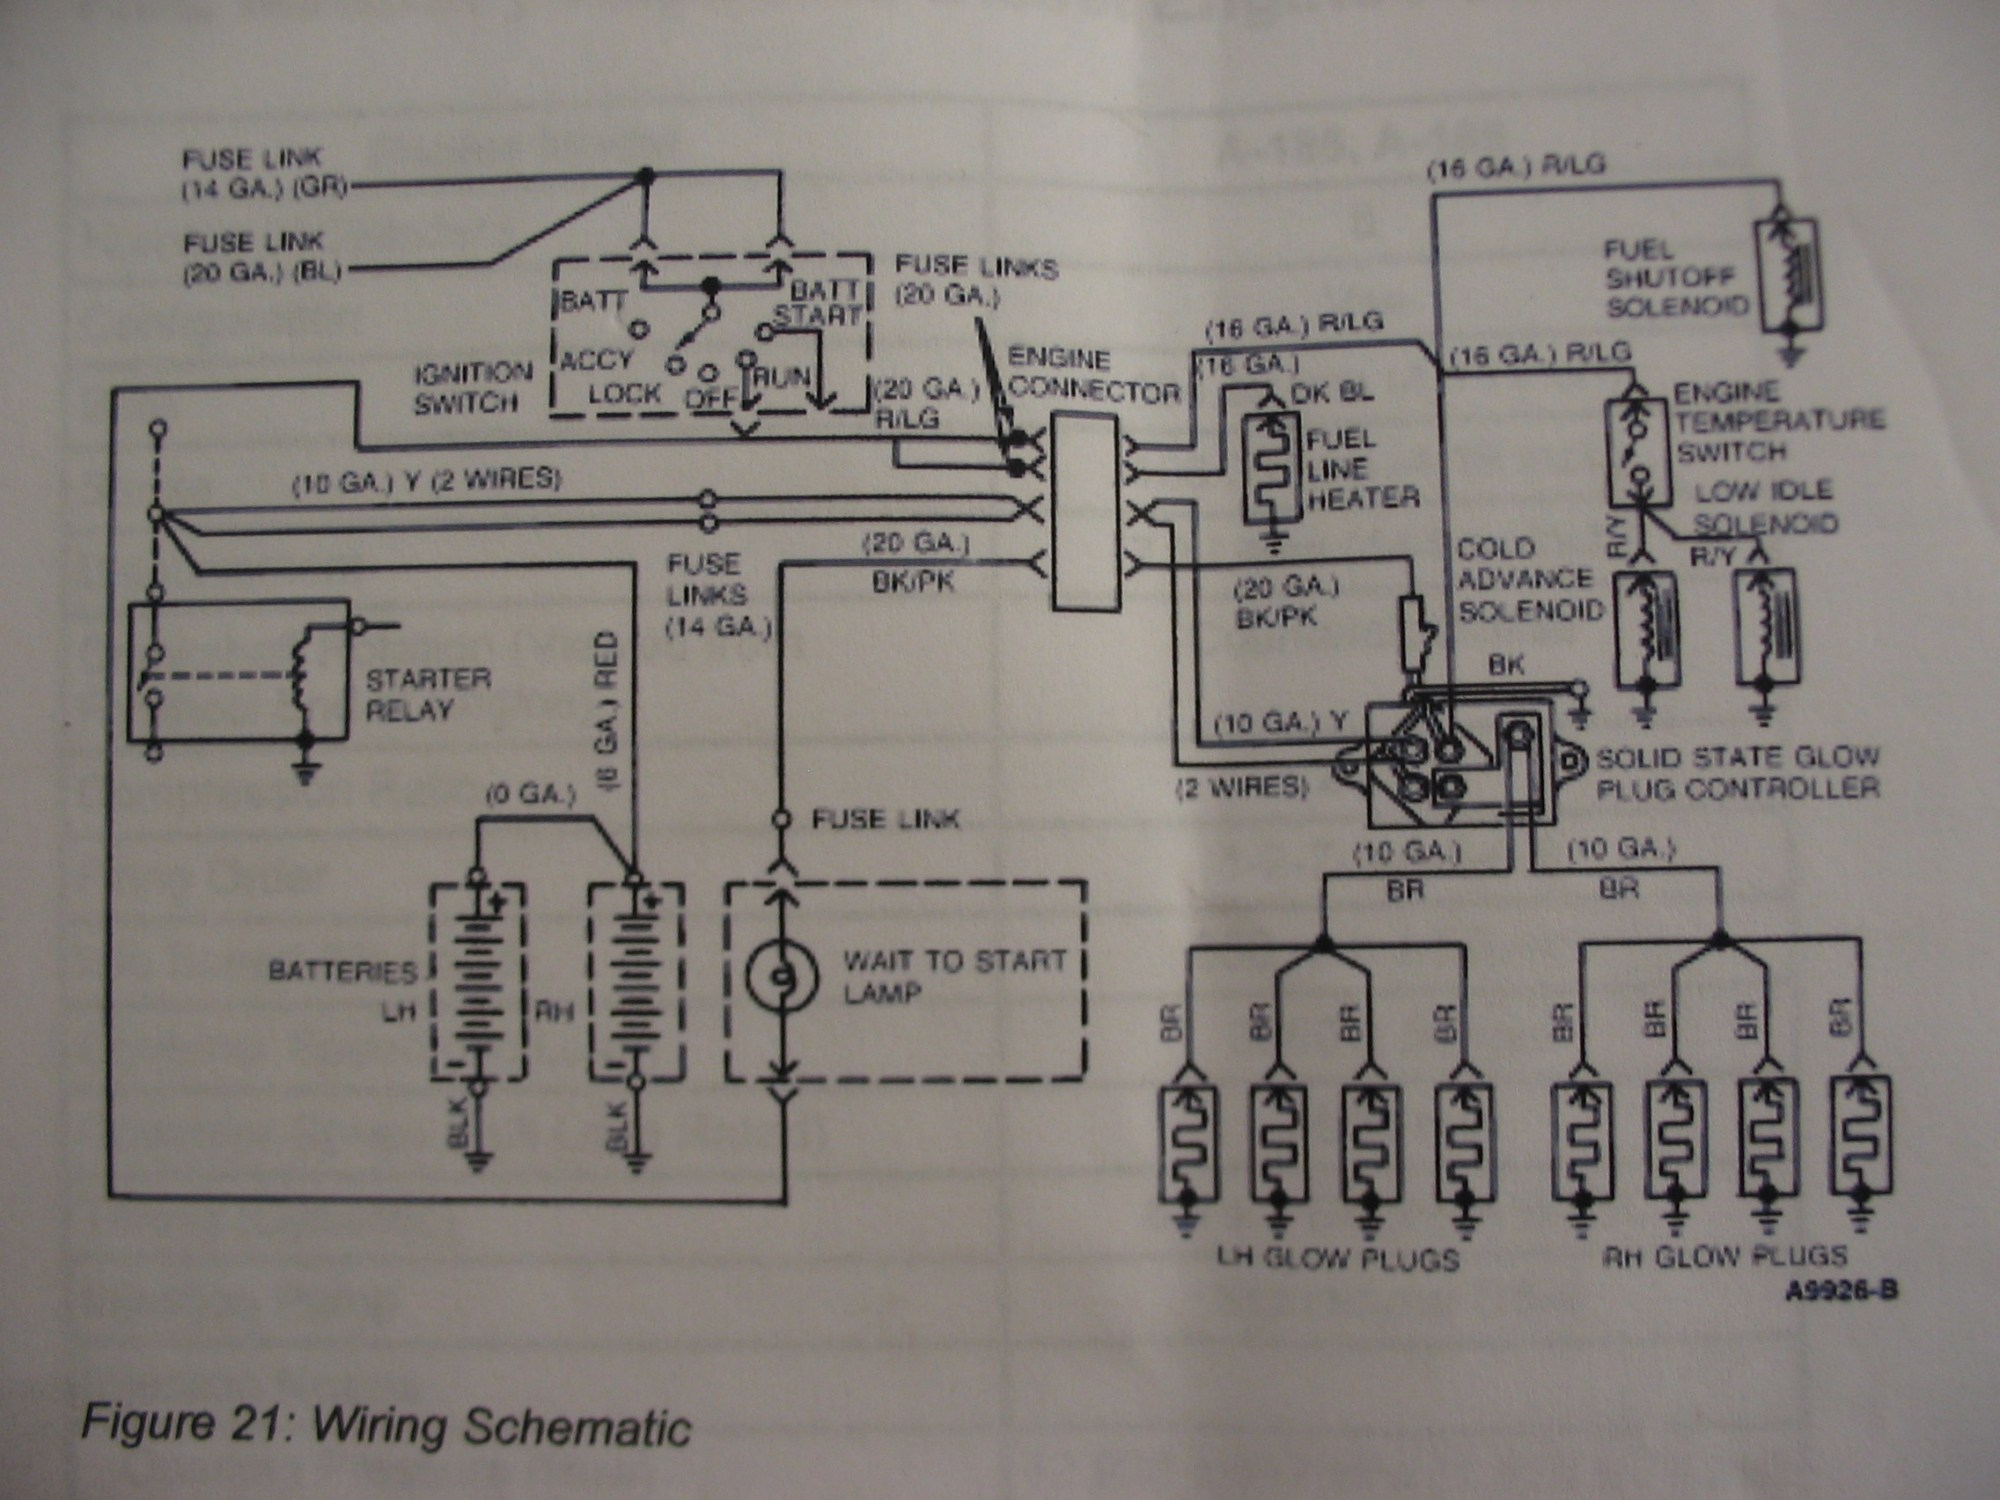 hight resolution of 91 ford glow plug wiring diagram